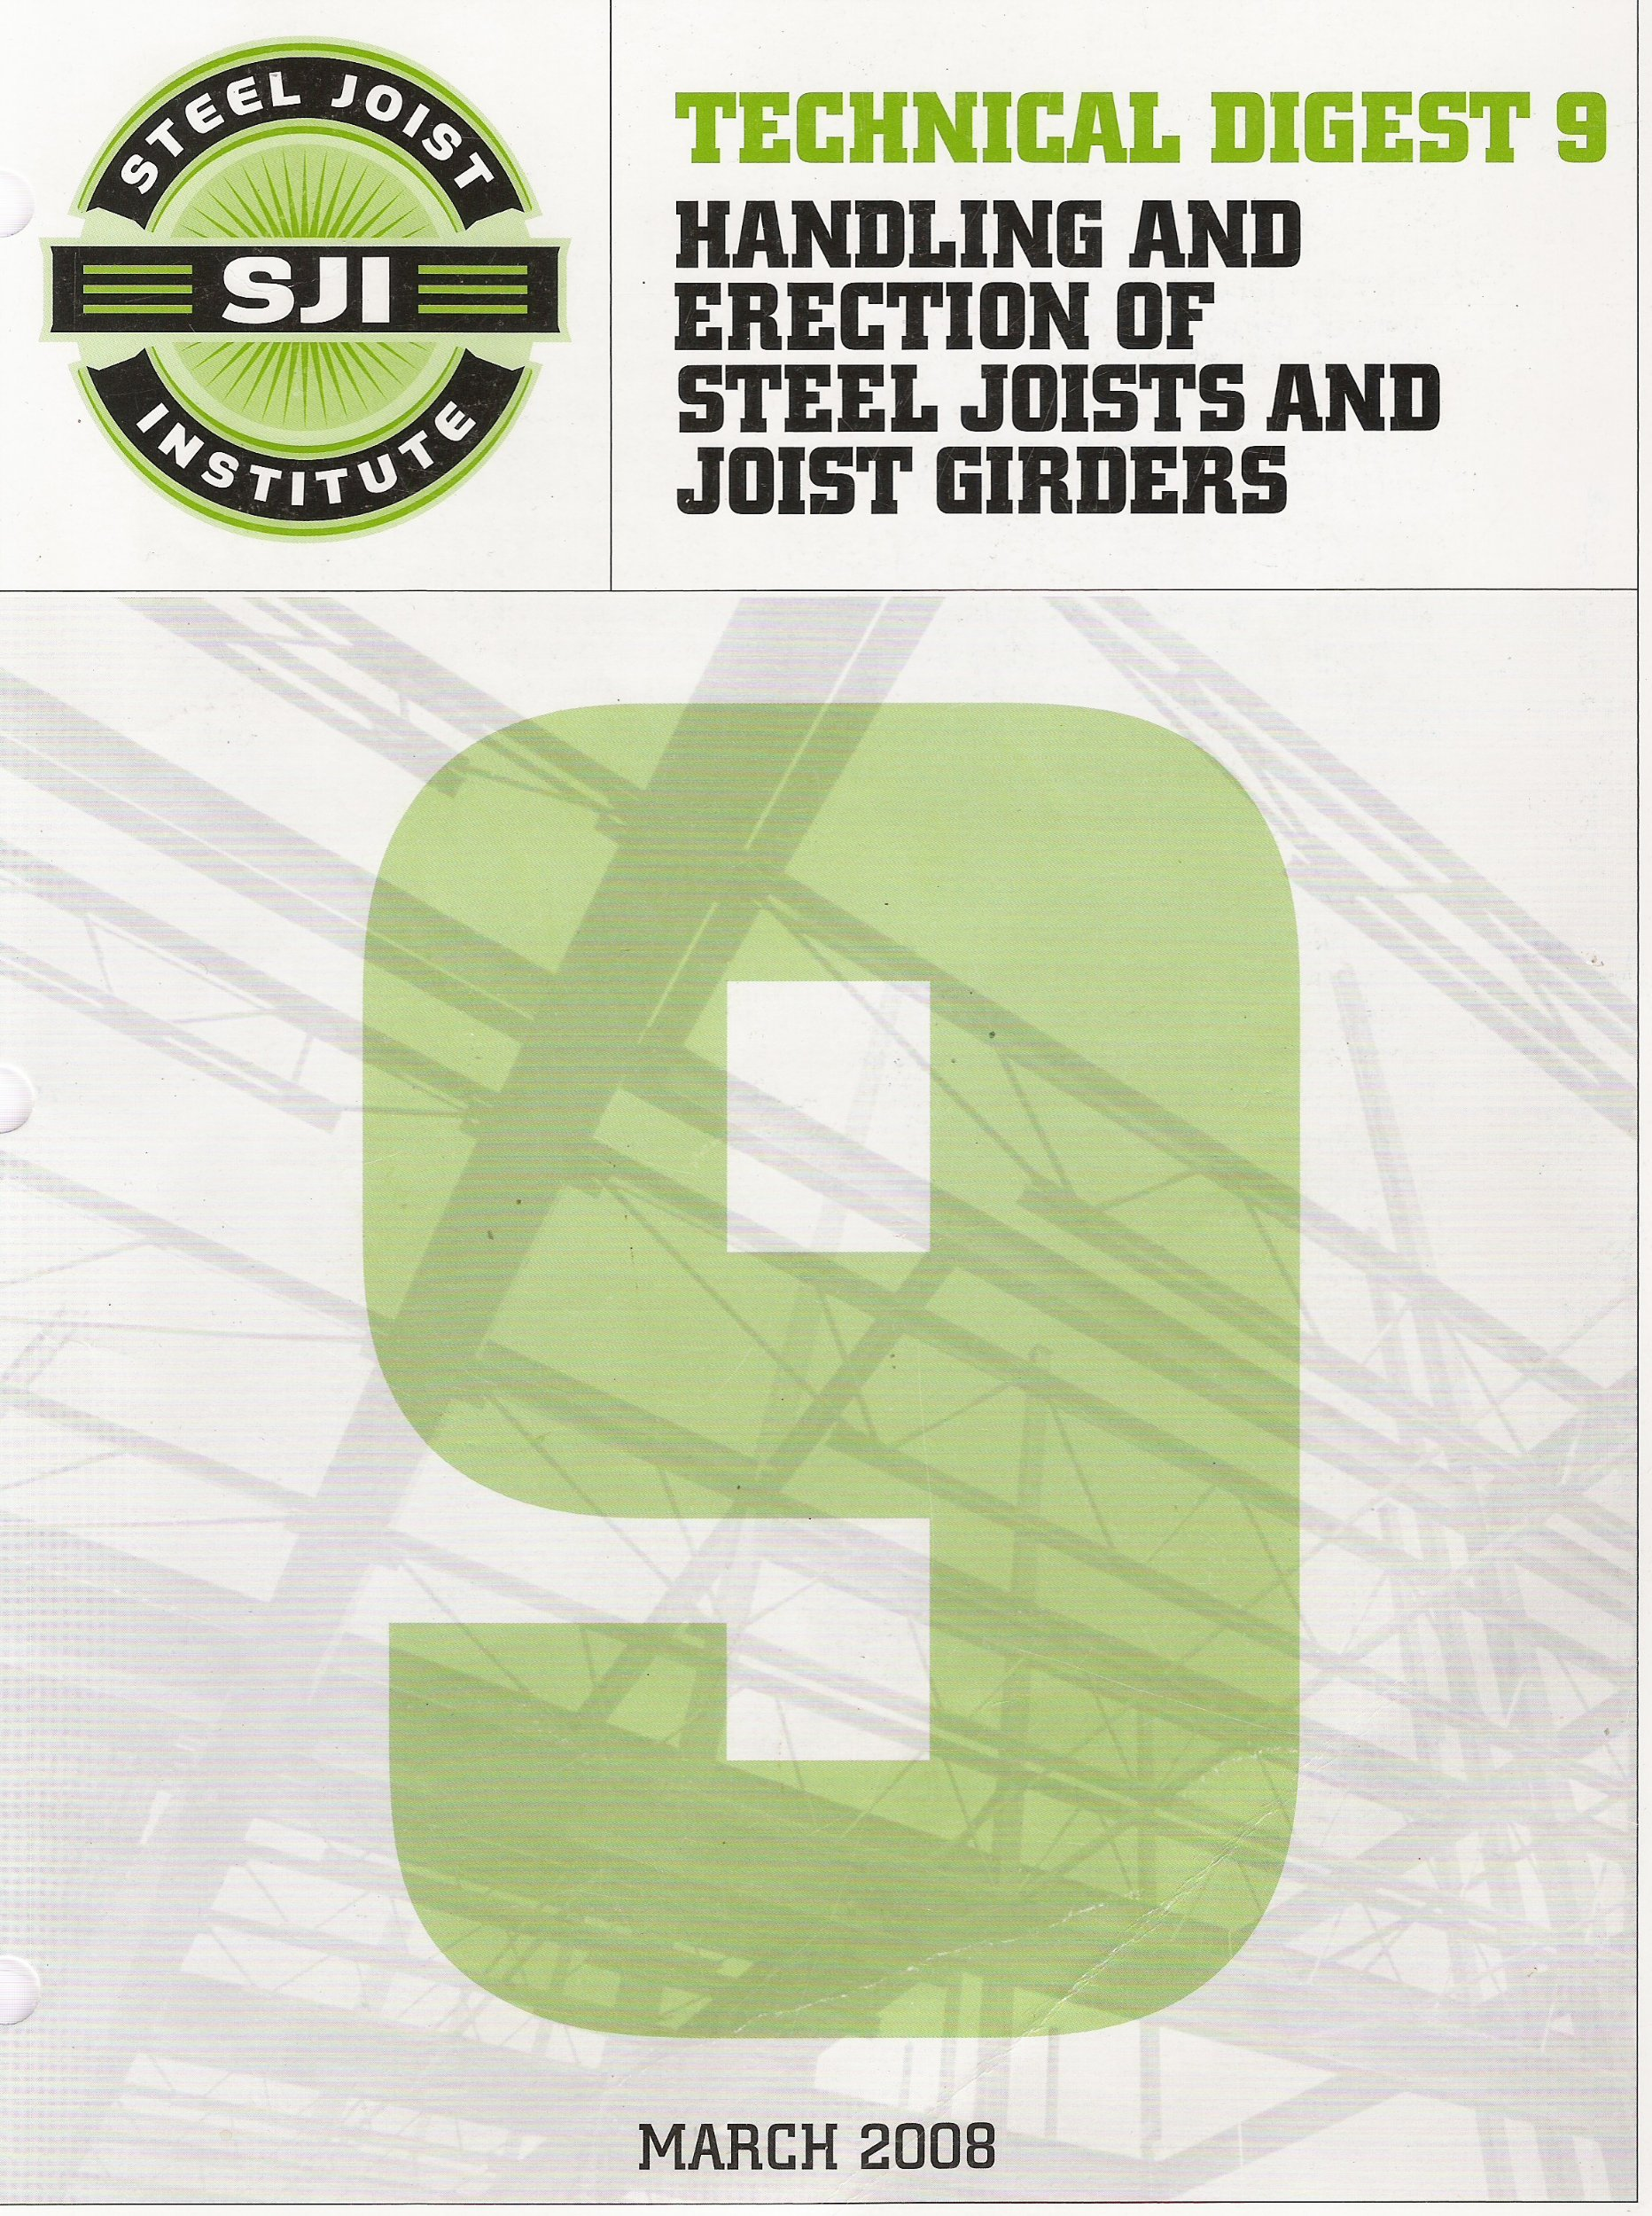 Technical Digest No. 9 – Handling and Erection of Steel Joists and Joist Girders, 3rd Edition, 2008